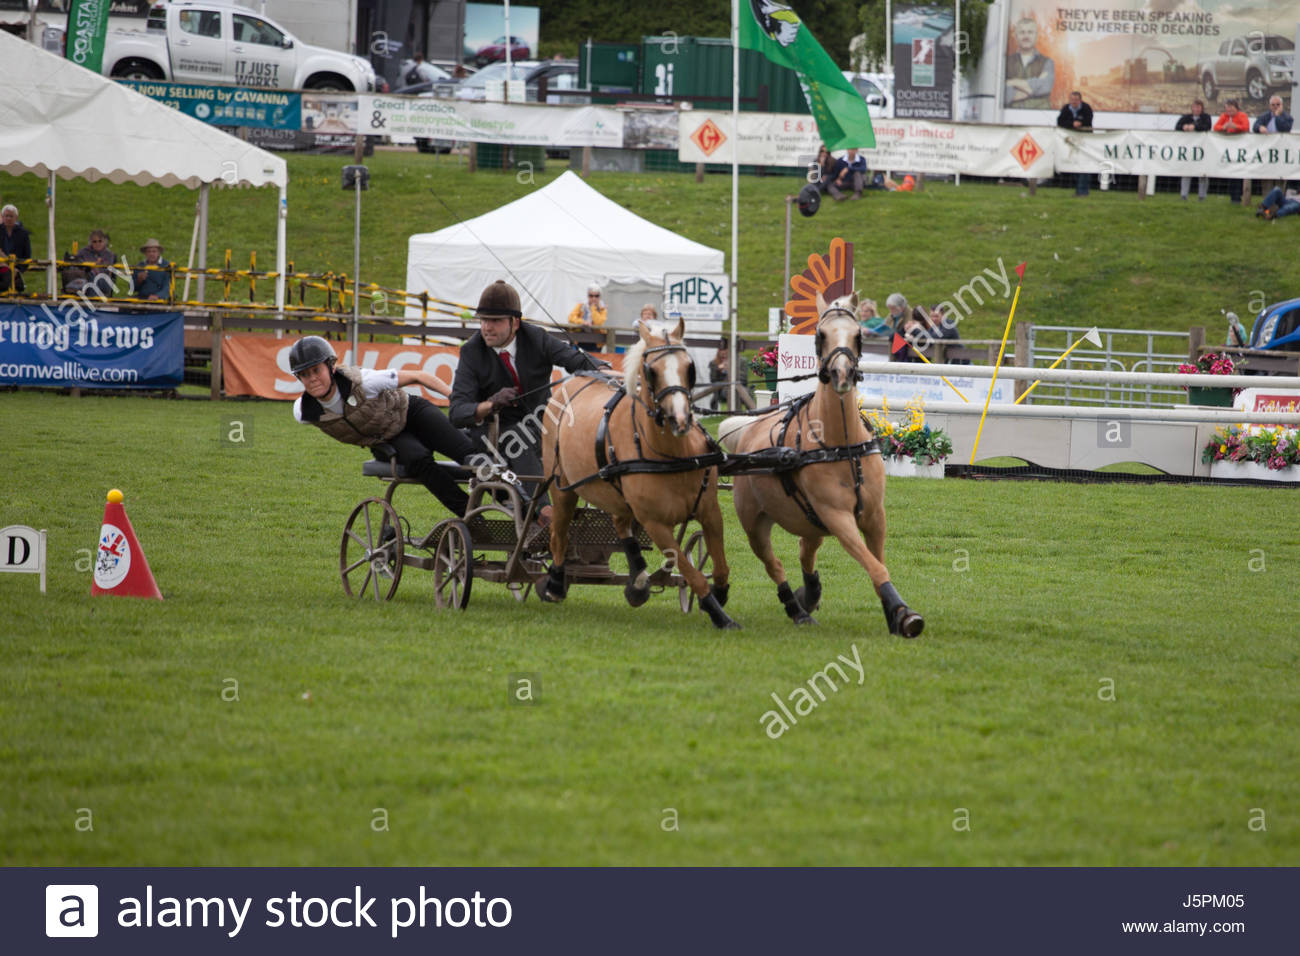 Clyst St Mary, Exeter, Devon, UK. 18th May, 2017. The First of three days at Devon County Show, Fun at the Double - Stock Image